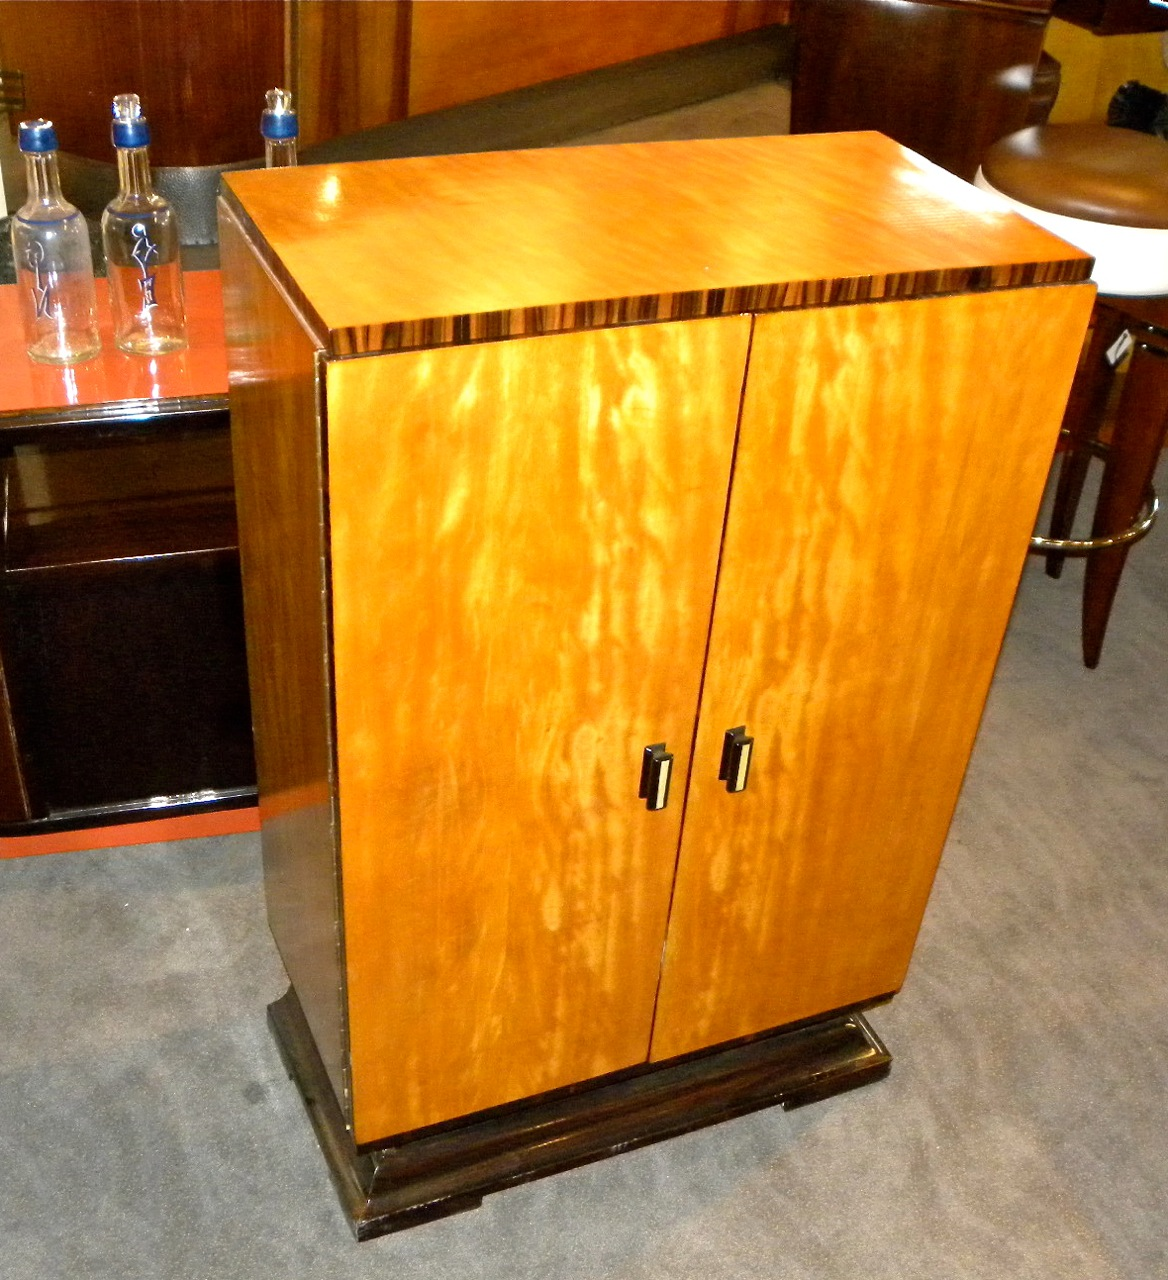 Art deco bar cabinet sold items bars art deco collection - What is art deco ...